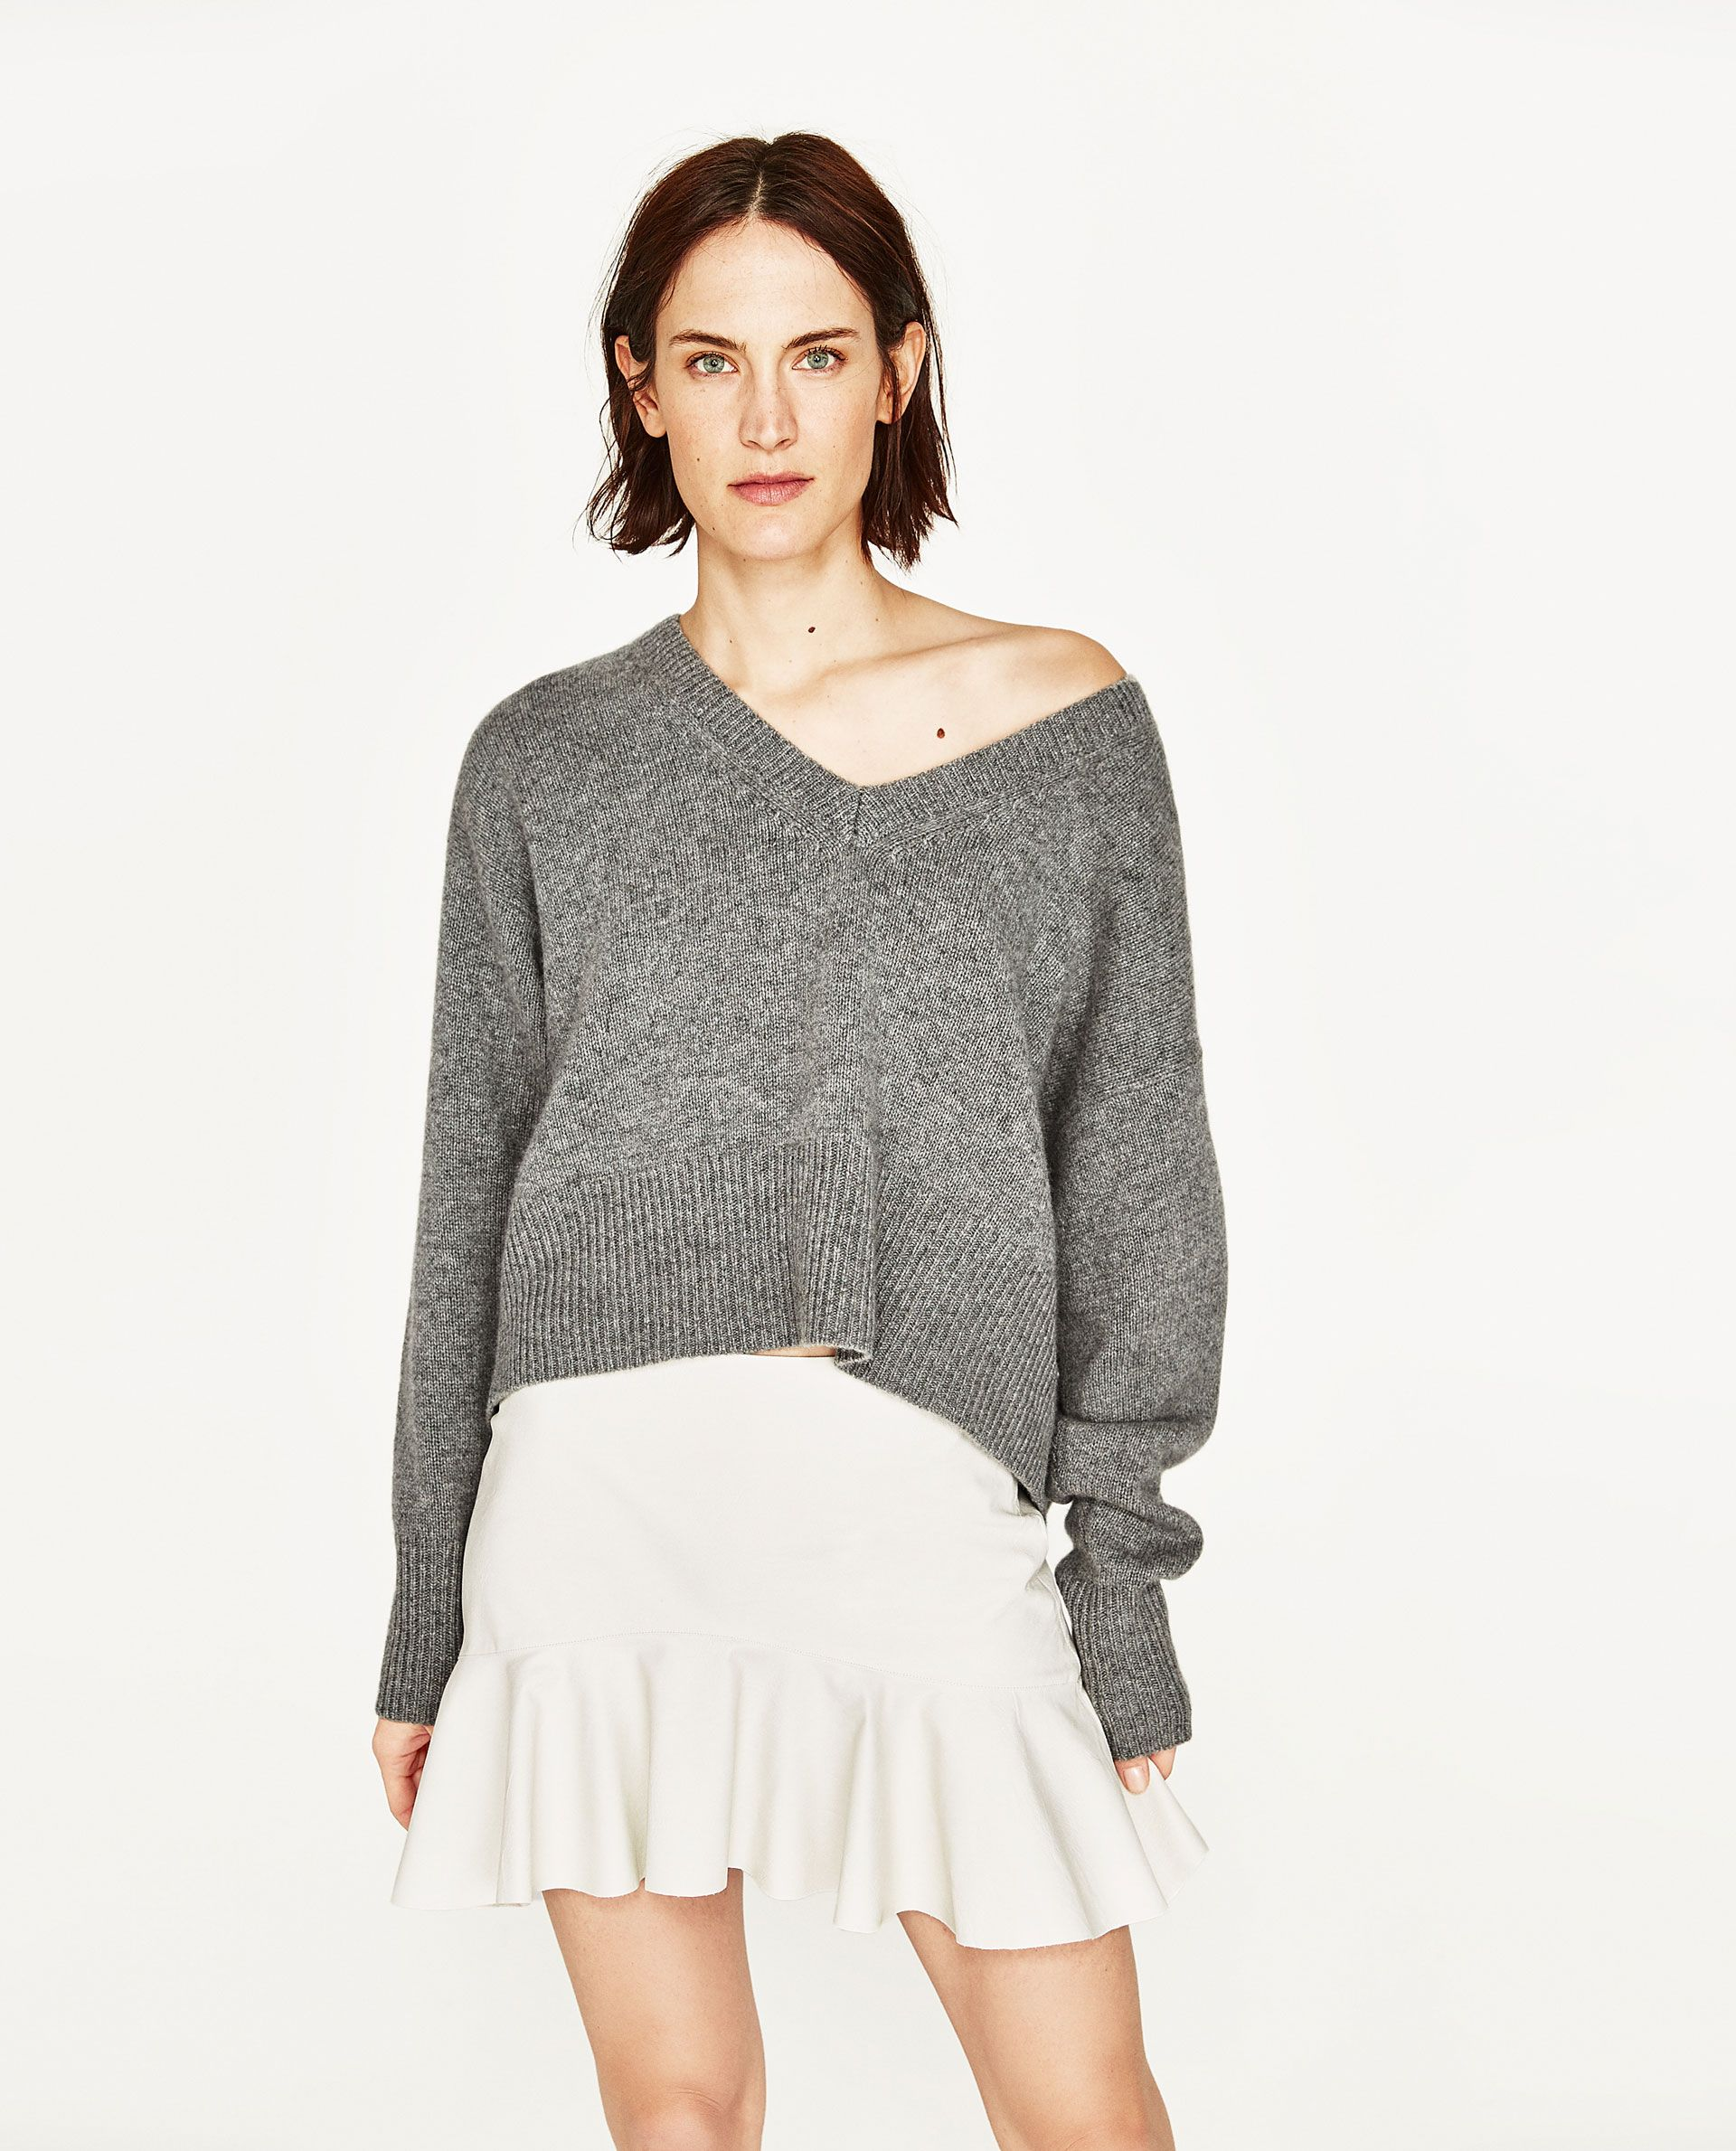 ca357ba404d4 ZARA WHITE FAUX LEATHER MINI SKIRT AND GREY CASHMERE SWEATER Zara Whites,  New Look Fashion